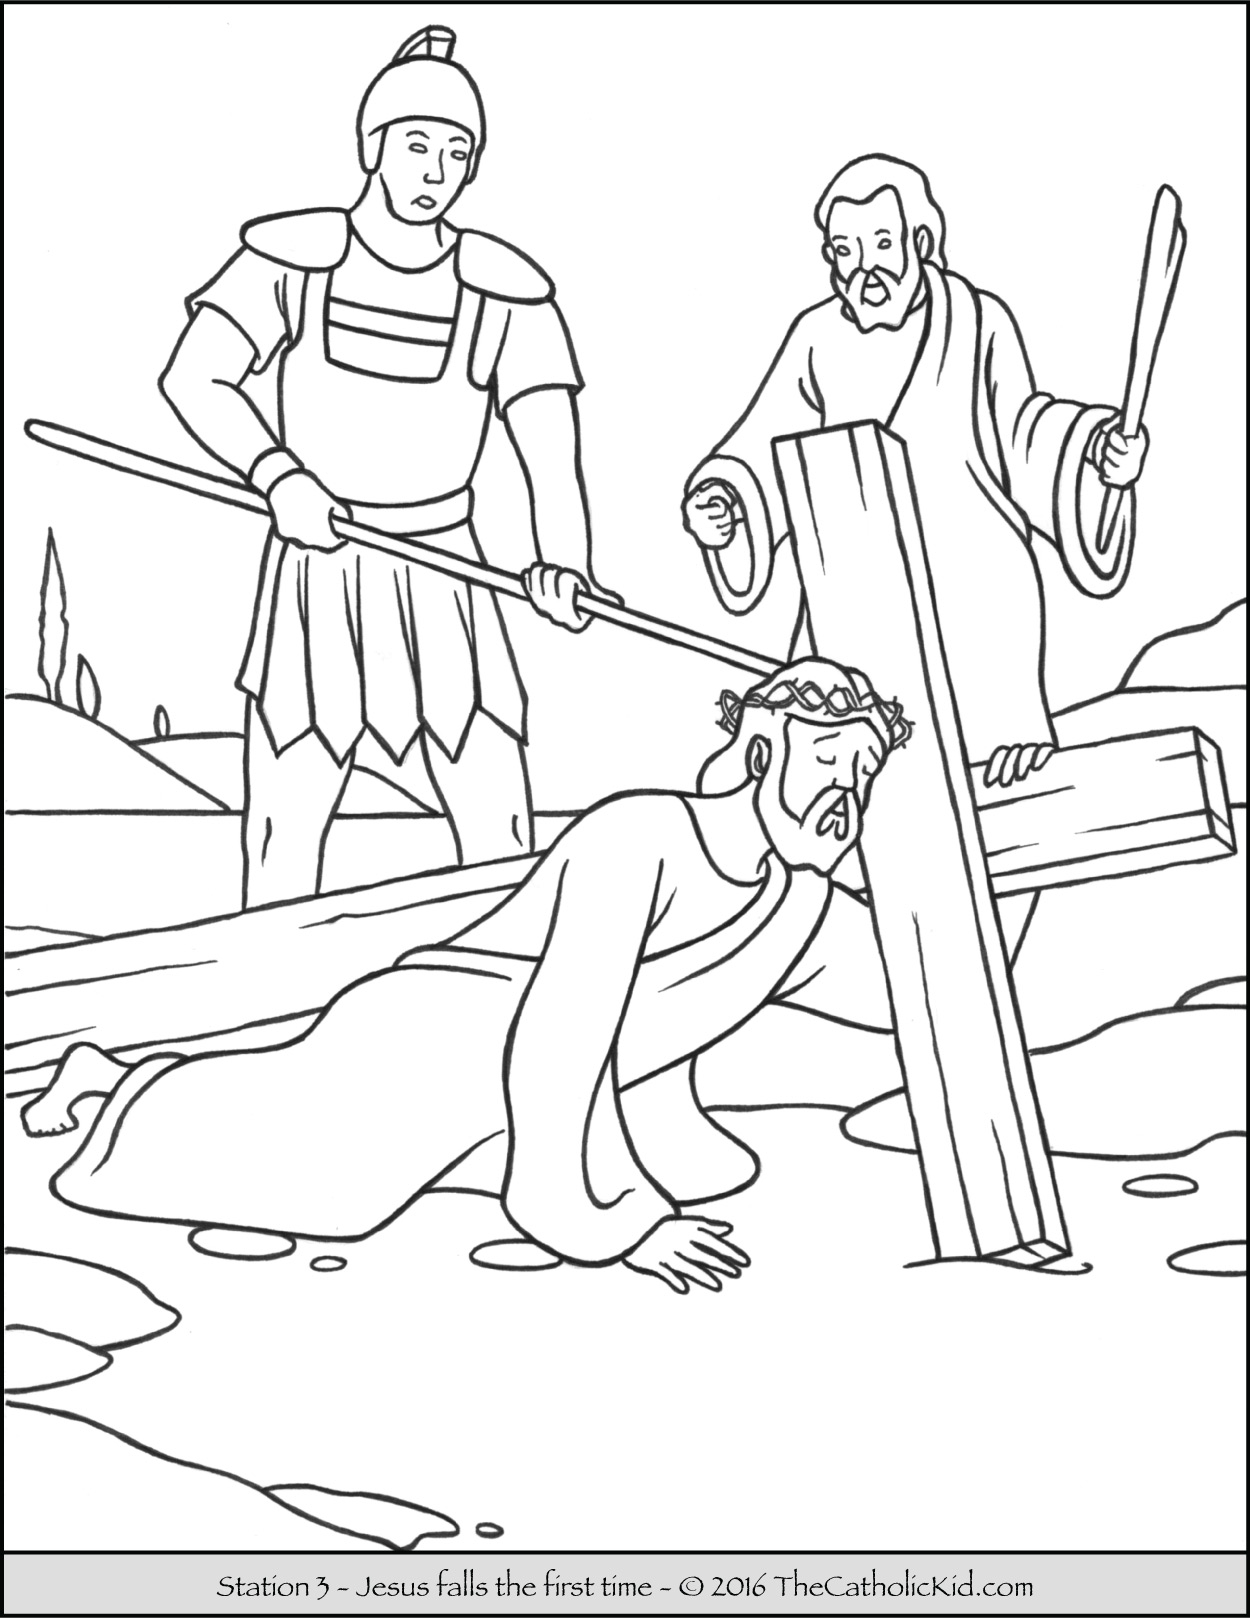 Stations of the Cross Coloring Pages.